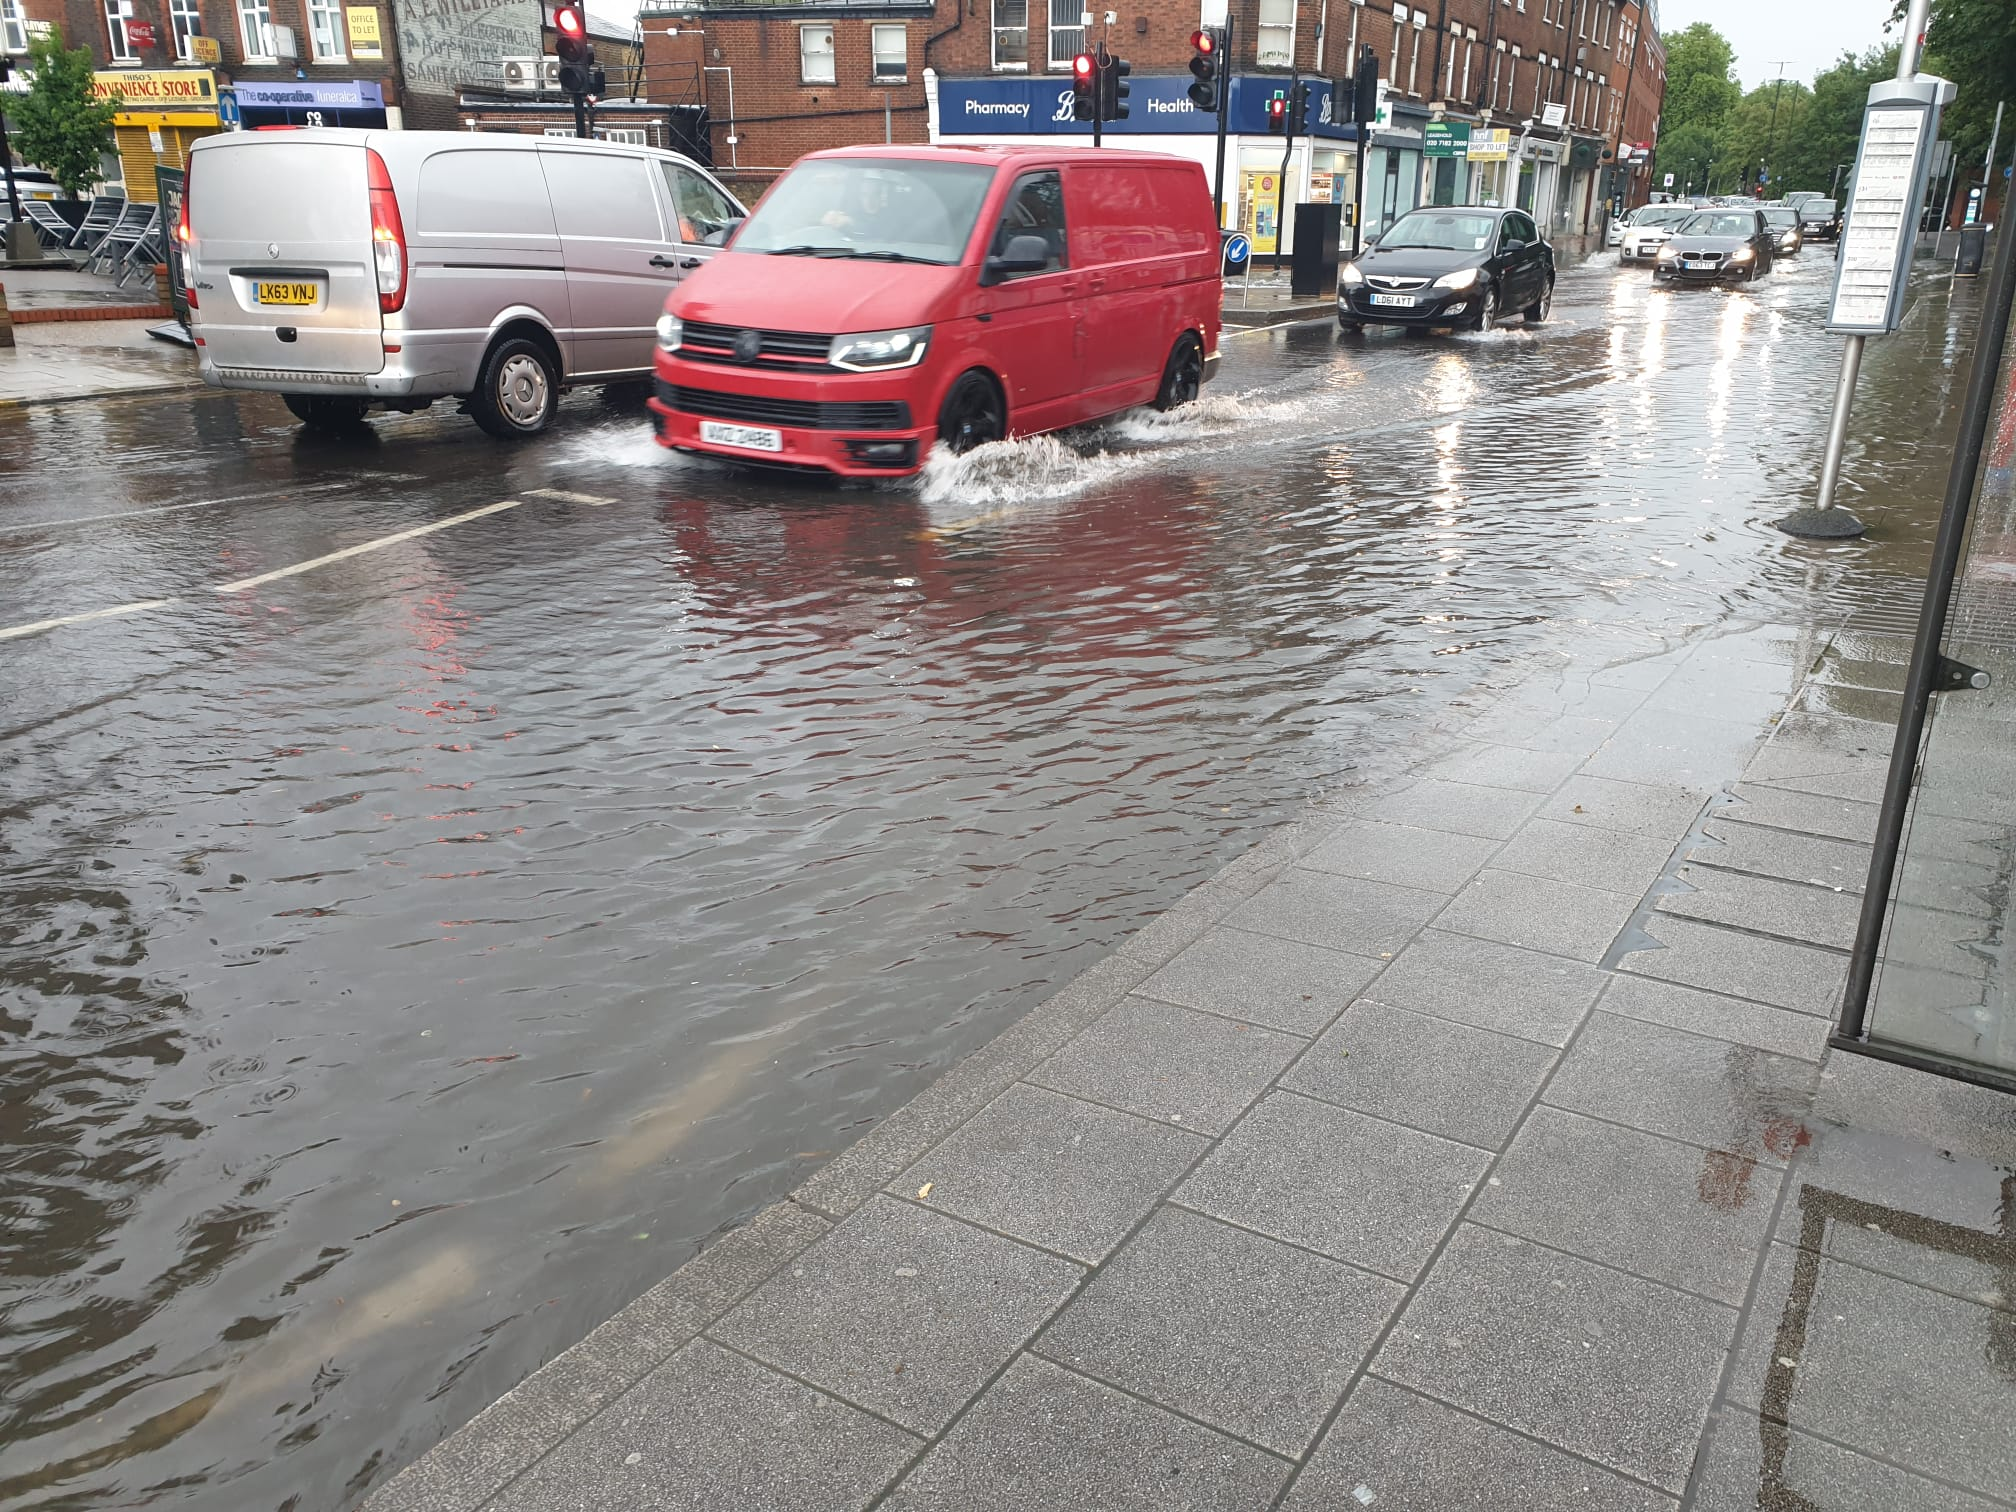 Flooding - Time for Action